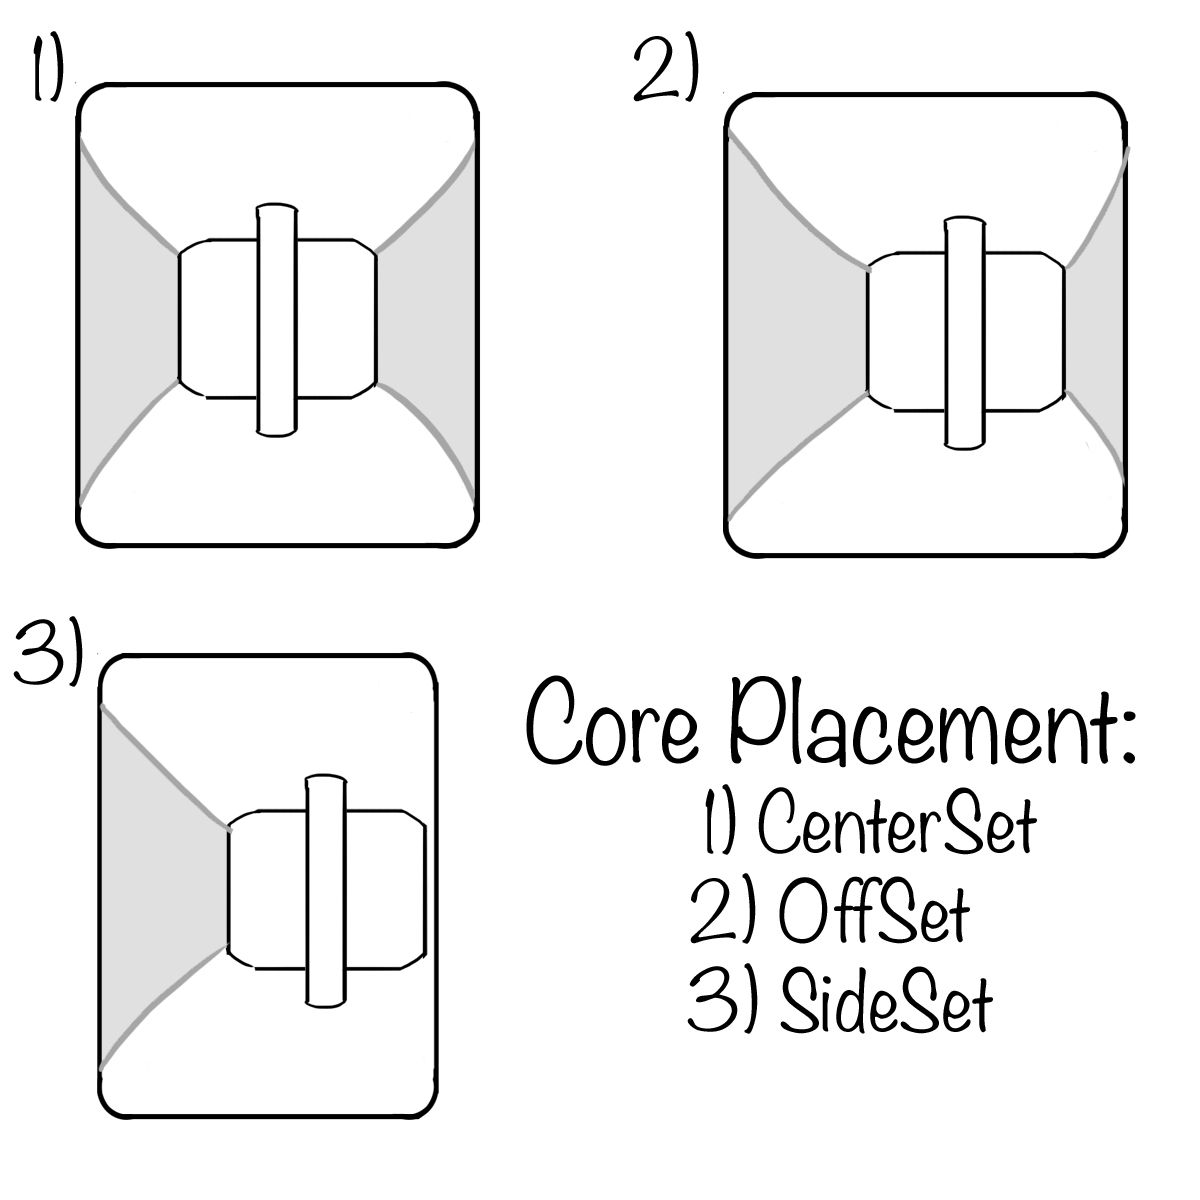 diagram of longboard wheel core placement centerset side set and offset  [ 1200 x 1200 Pixel ]